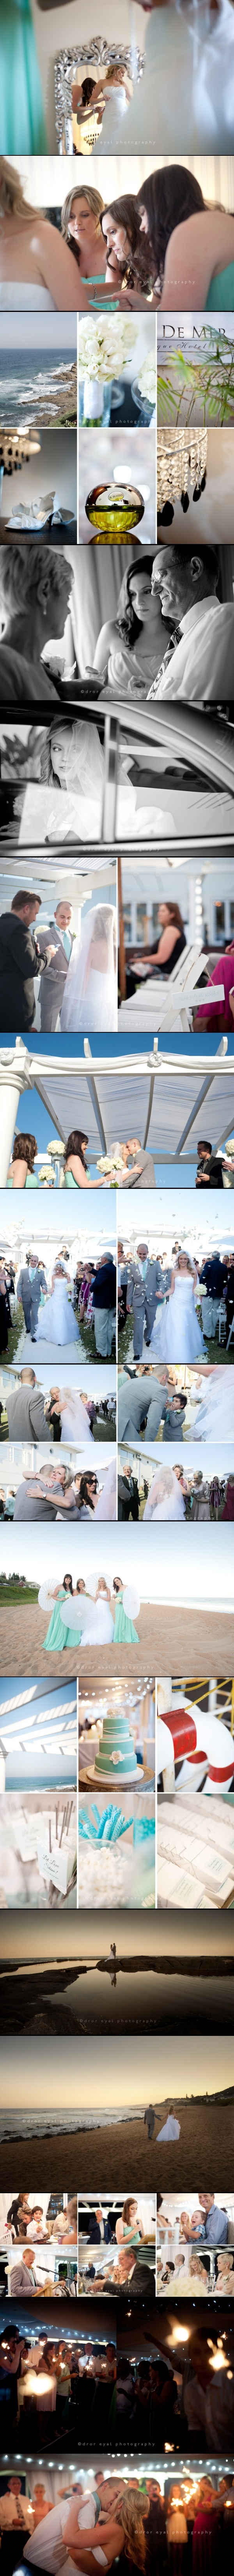 wedding dress hire cape town northern suburbs%0A cover letter examples for general position